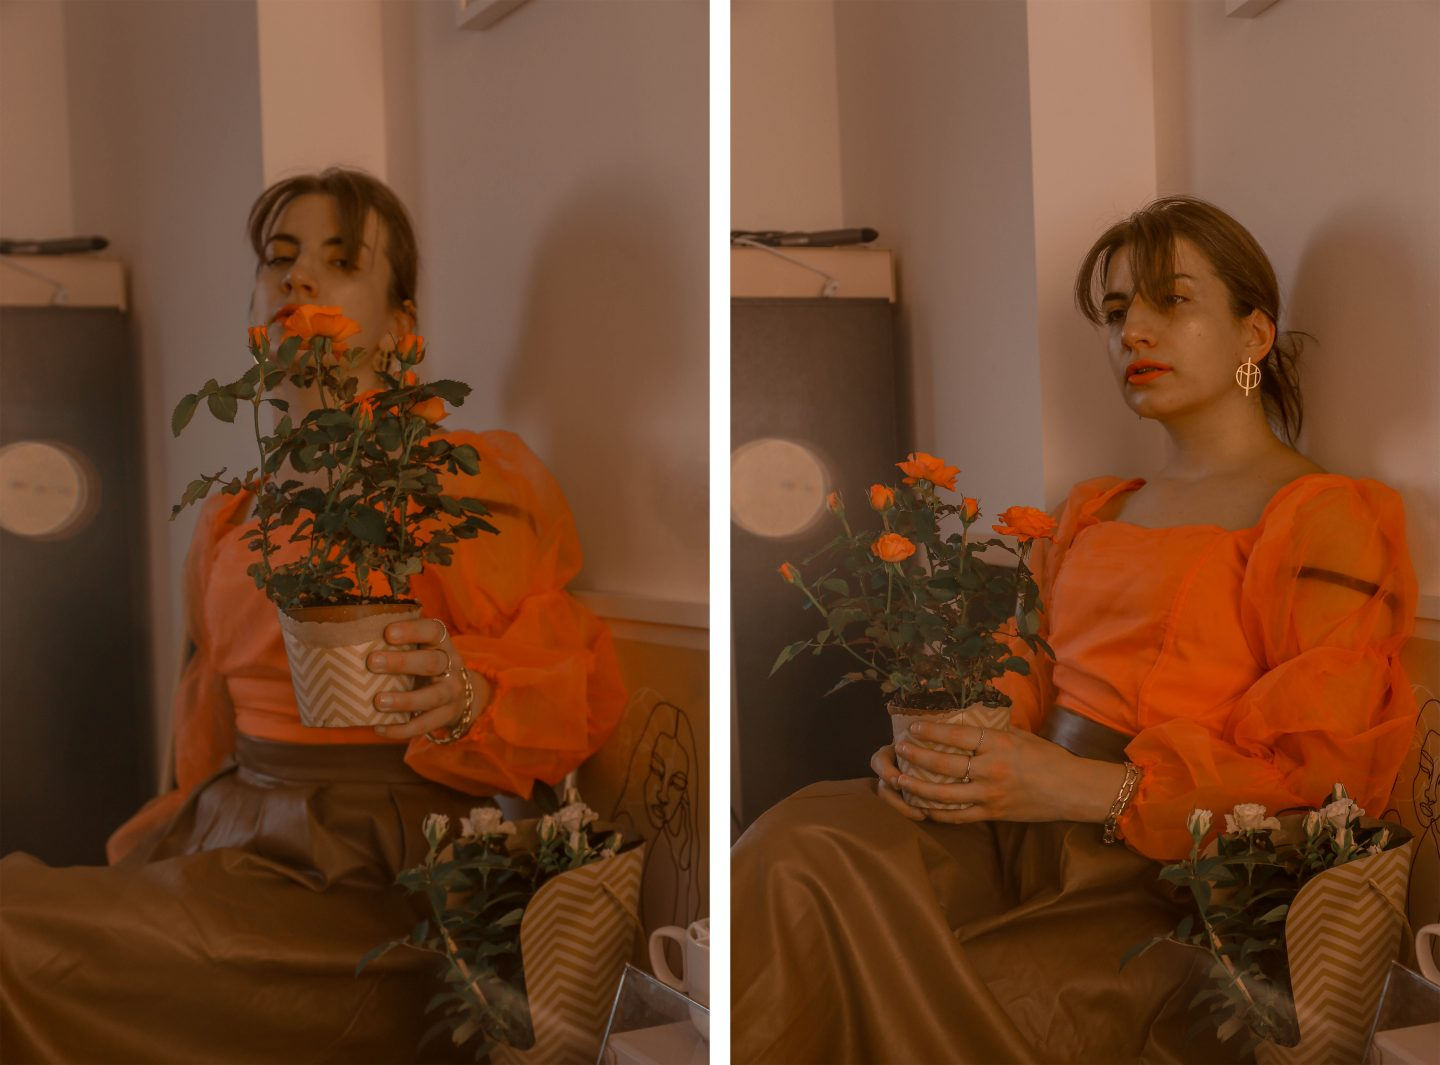 3 Ways to Pose with Flowers